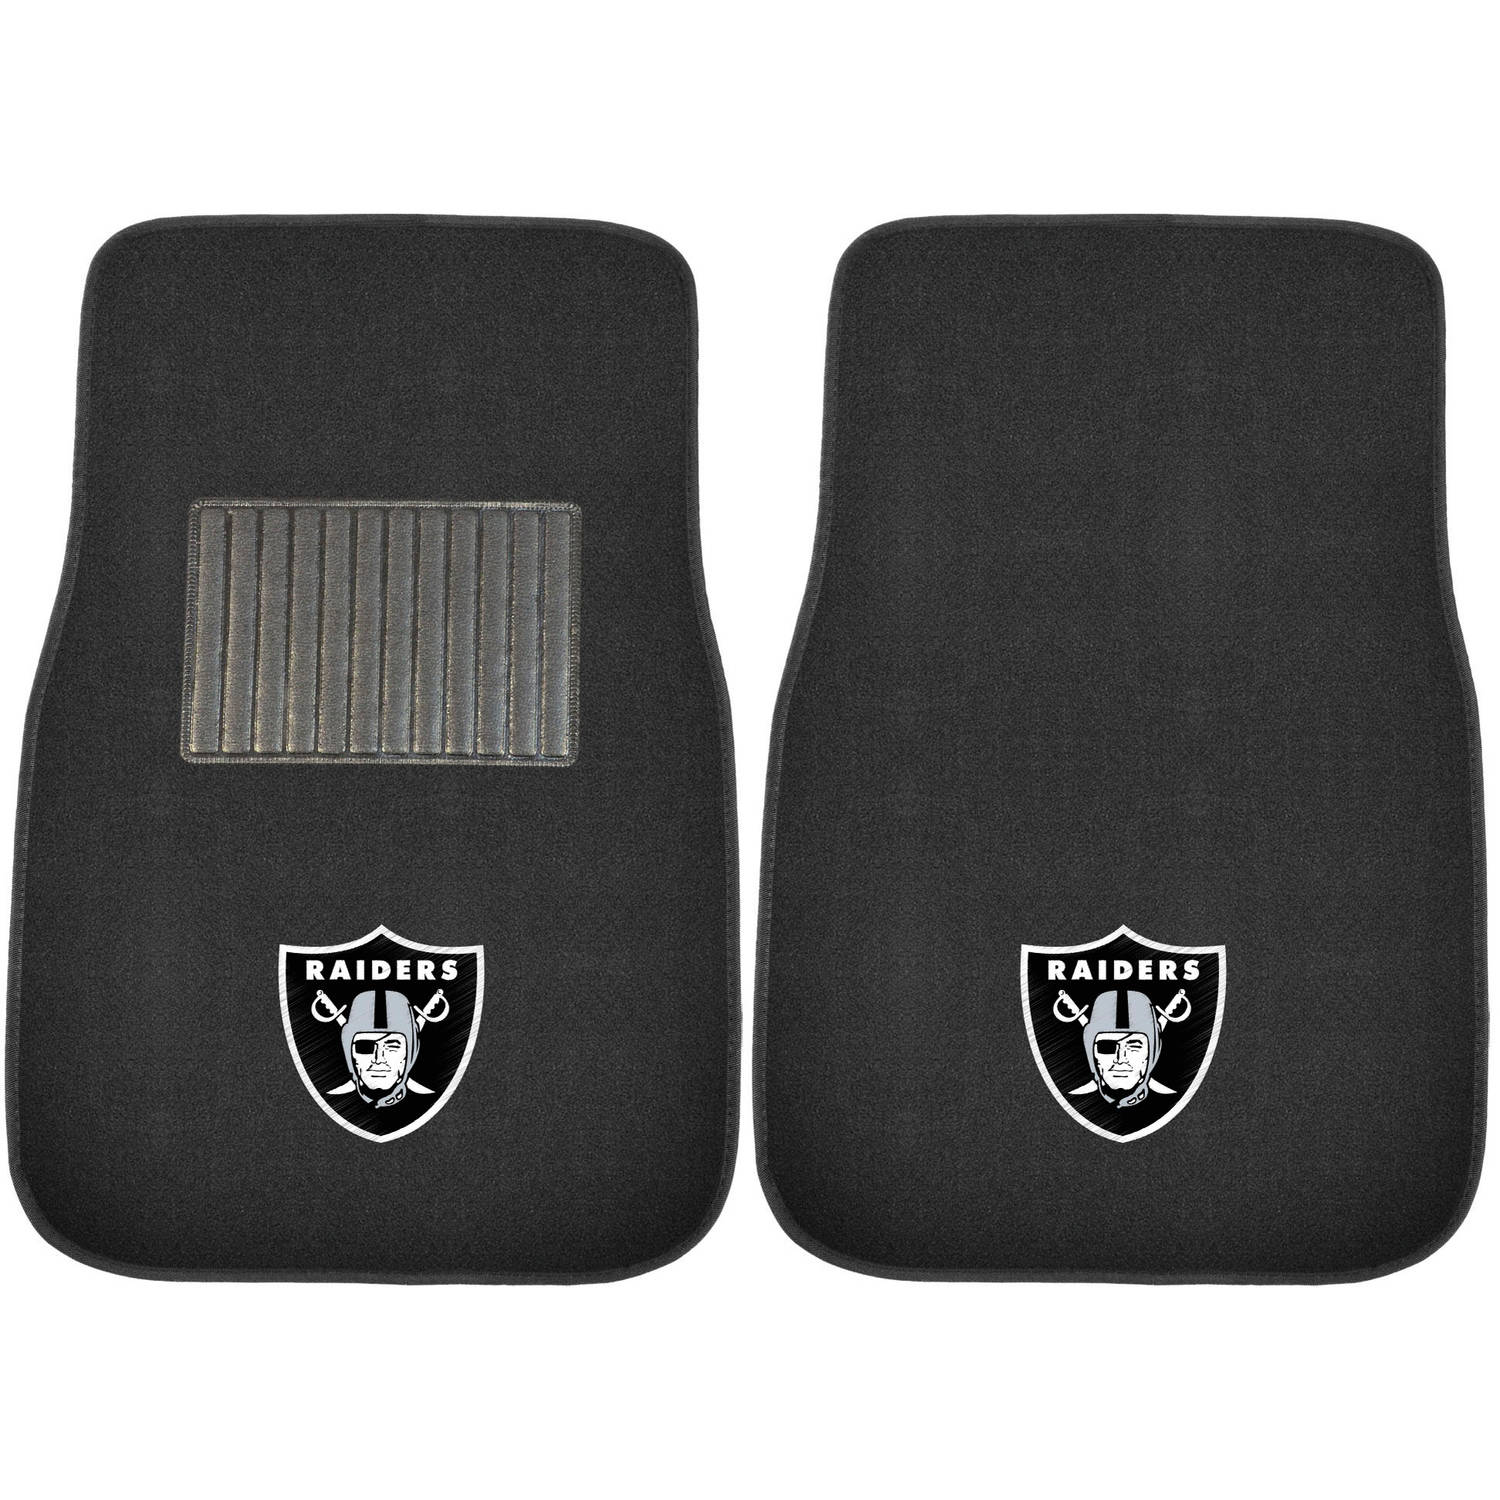 NFL Oakland Raiders Embroidered Car Mats